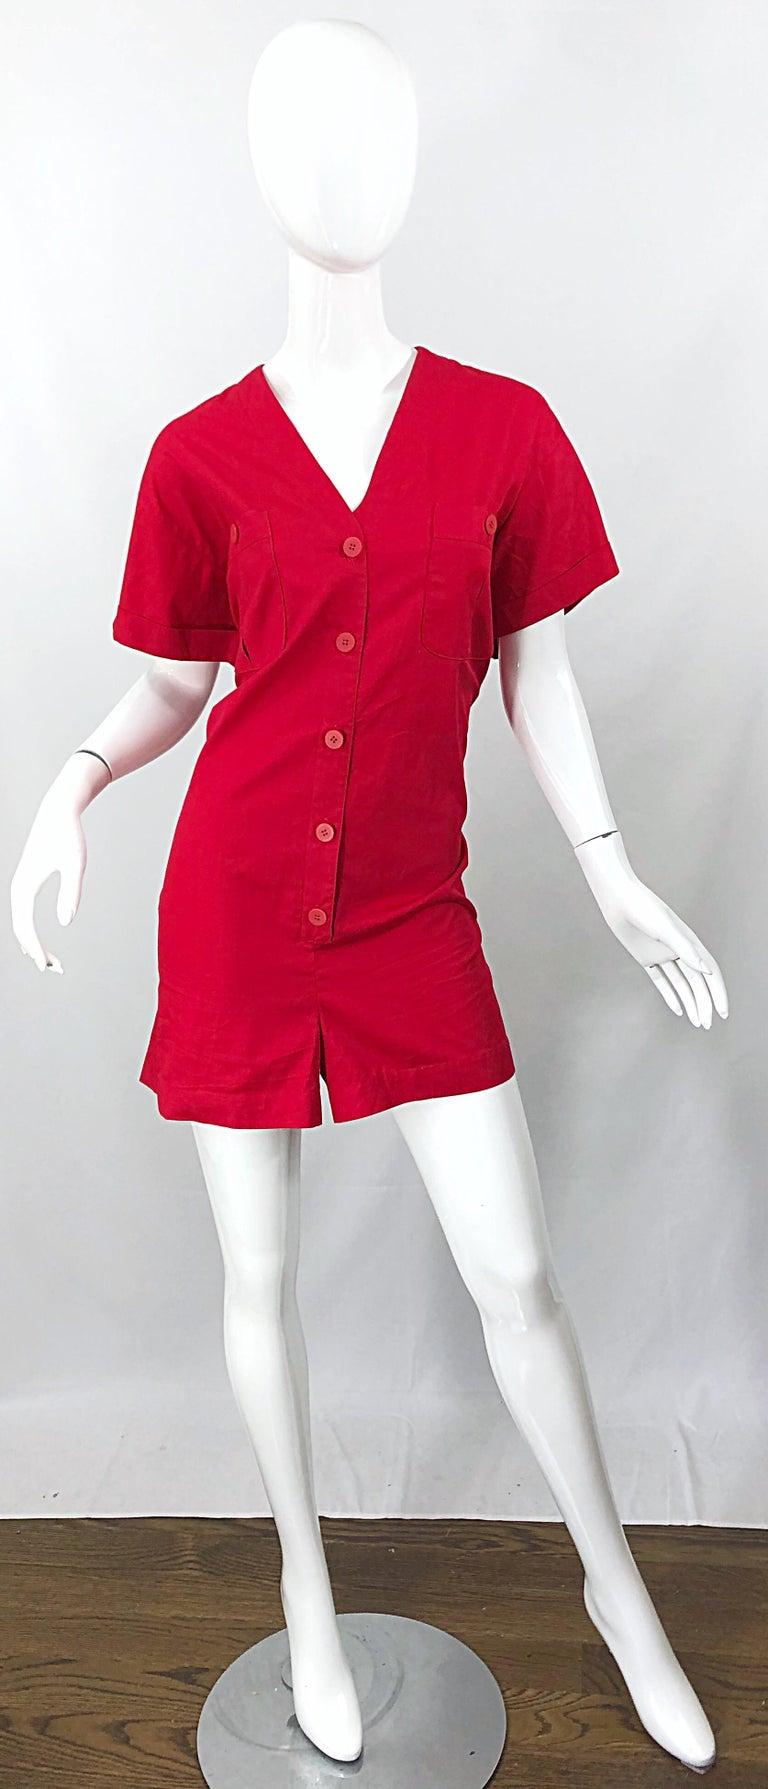 Brand new with tags CHIRSTIAN DIOR romper / jumpsuit in rare Size 14 ! Soft cotton lipstick red fabric buttons up the front, and at each breast pocket. Flattering v-neck collar with cuffed sleeves. Pockets also at each side of the waist. Can easily